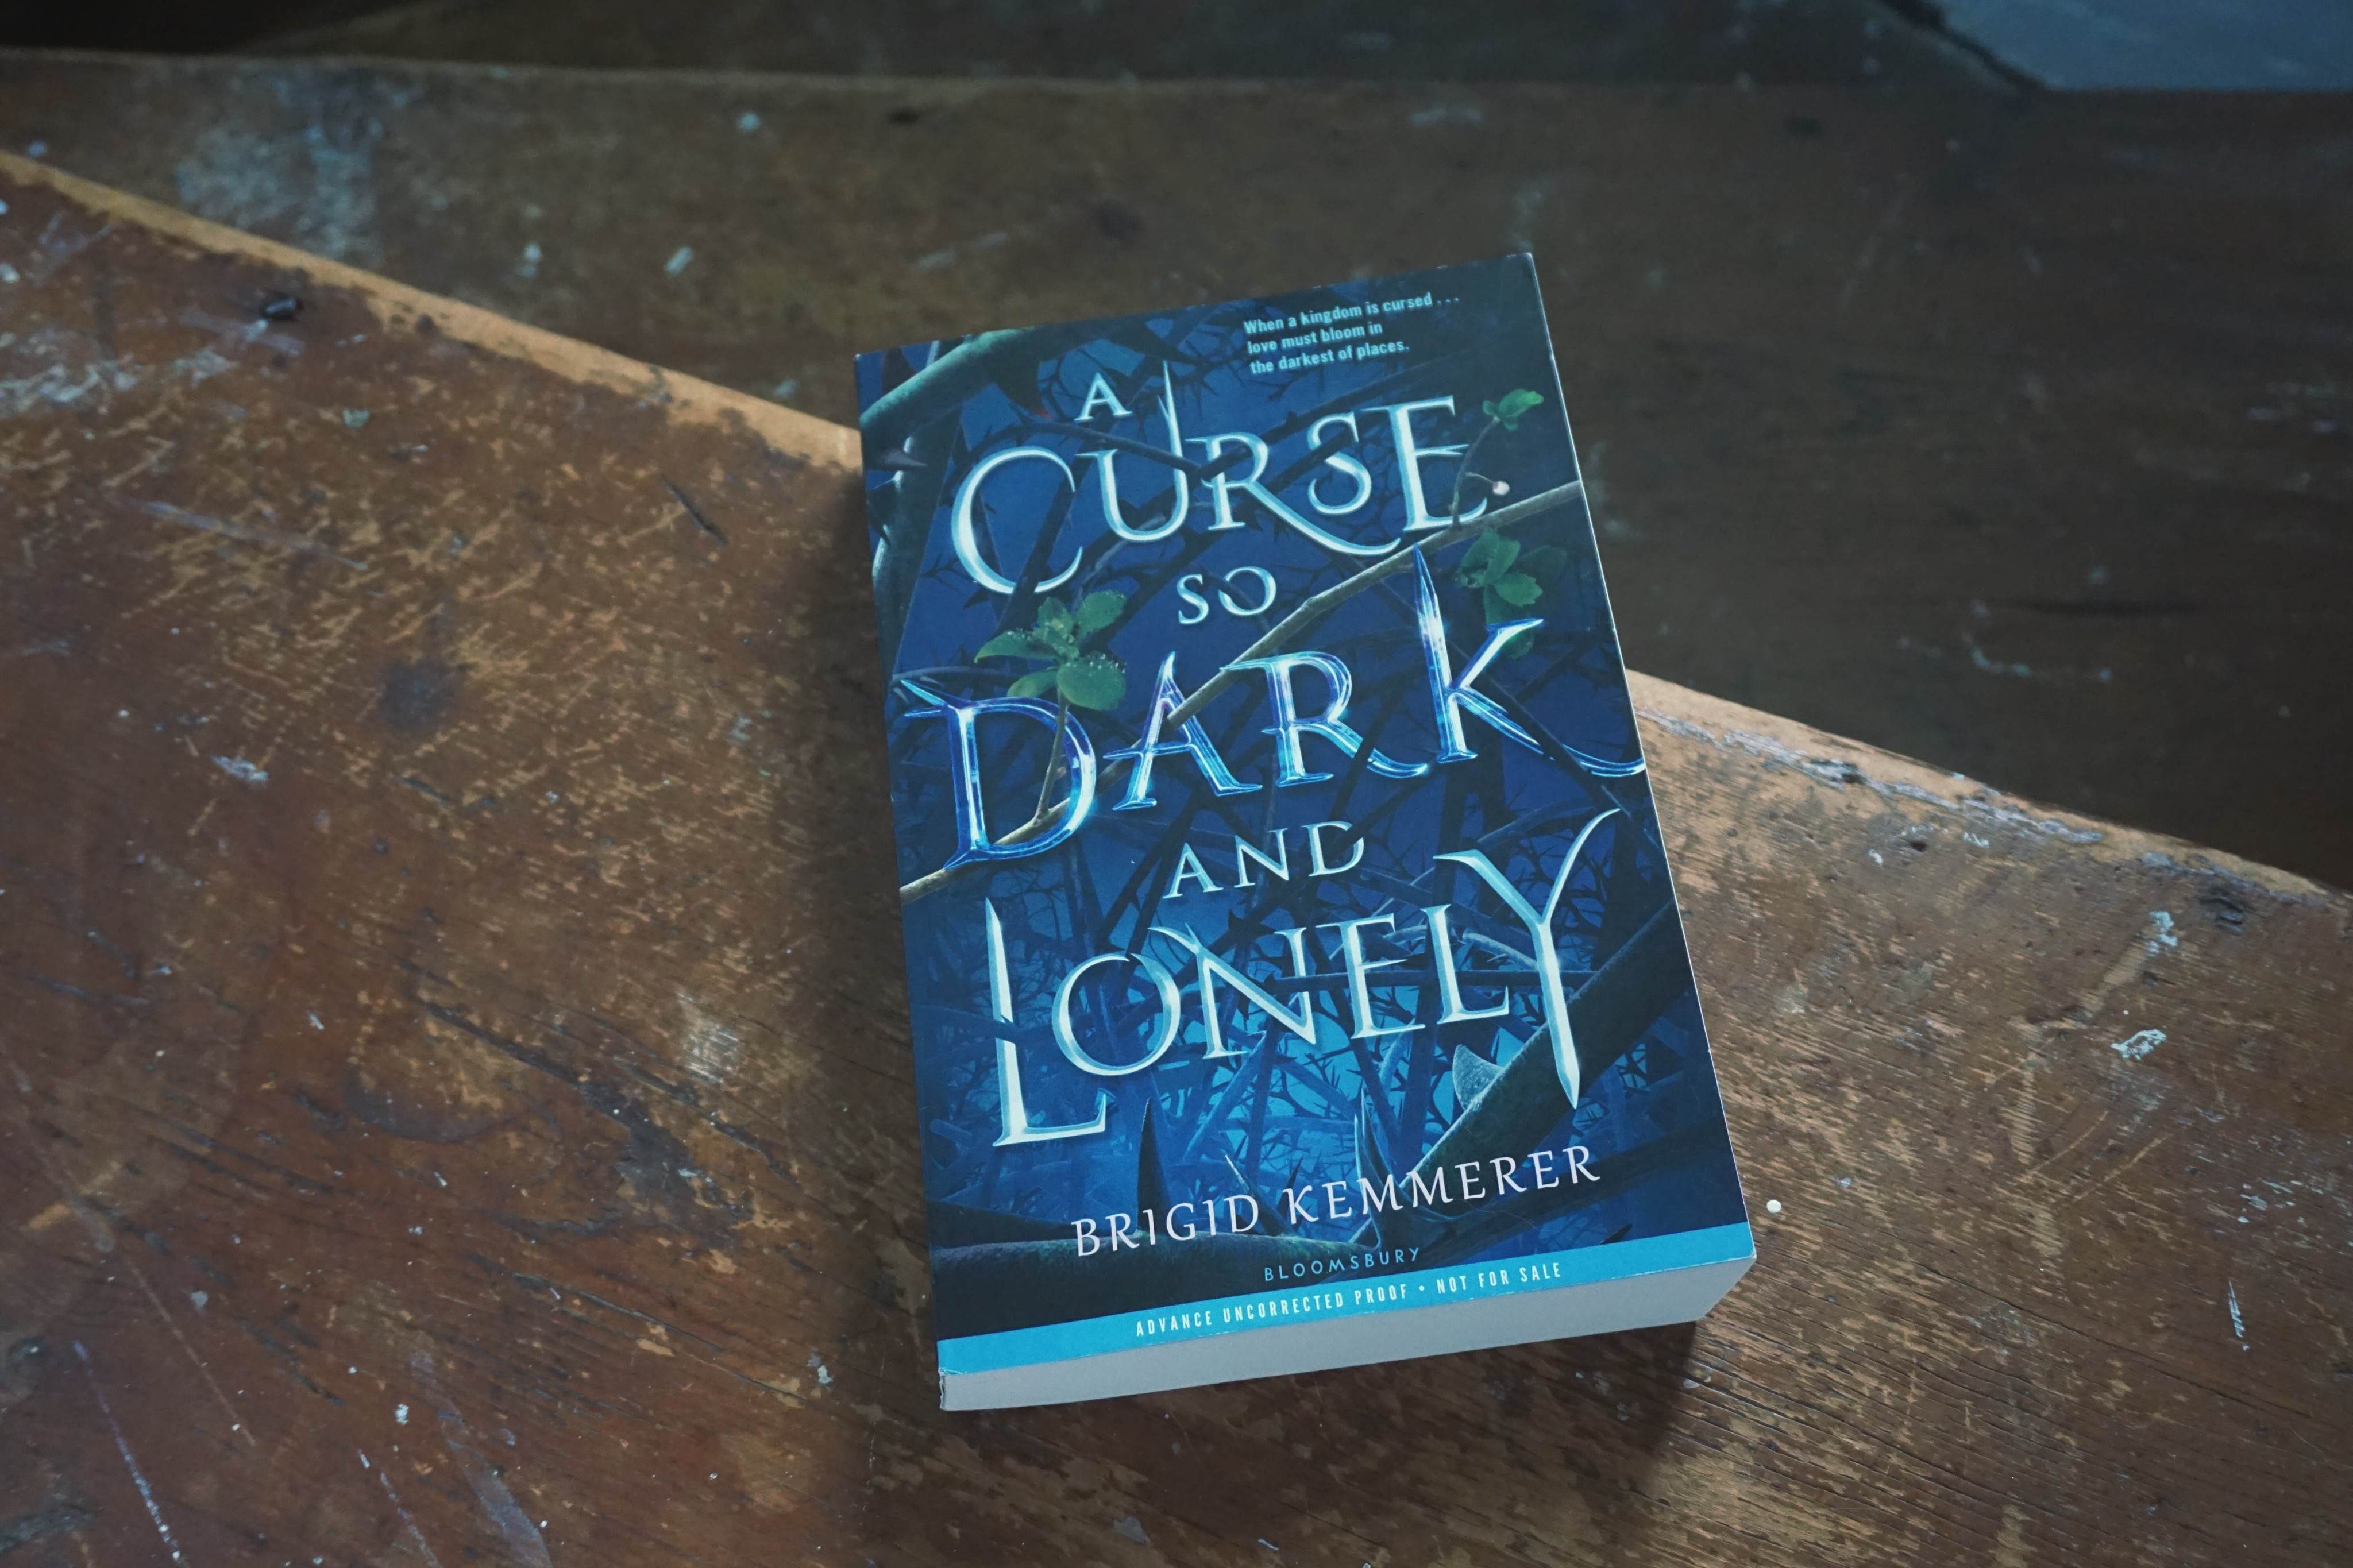 Breaking the curse of loneliness